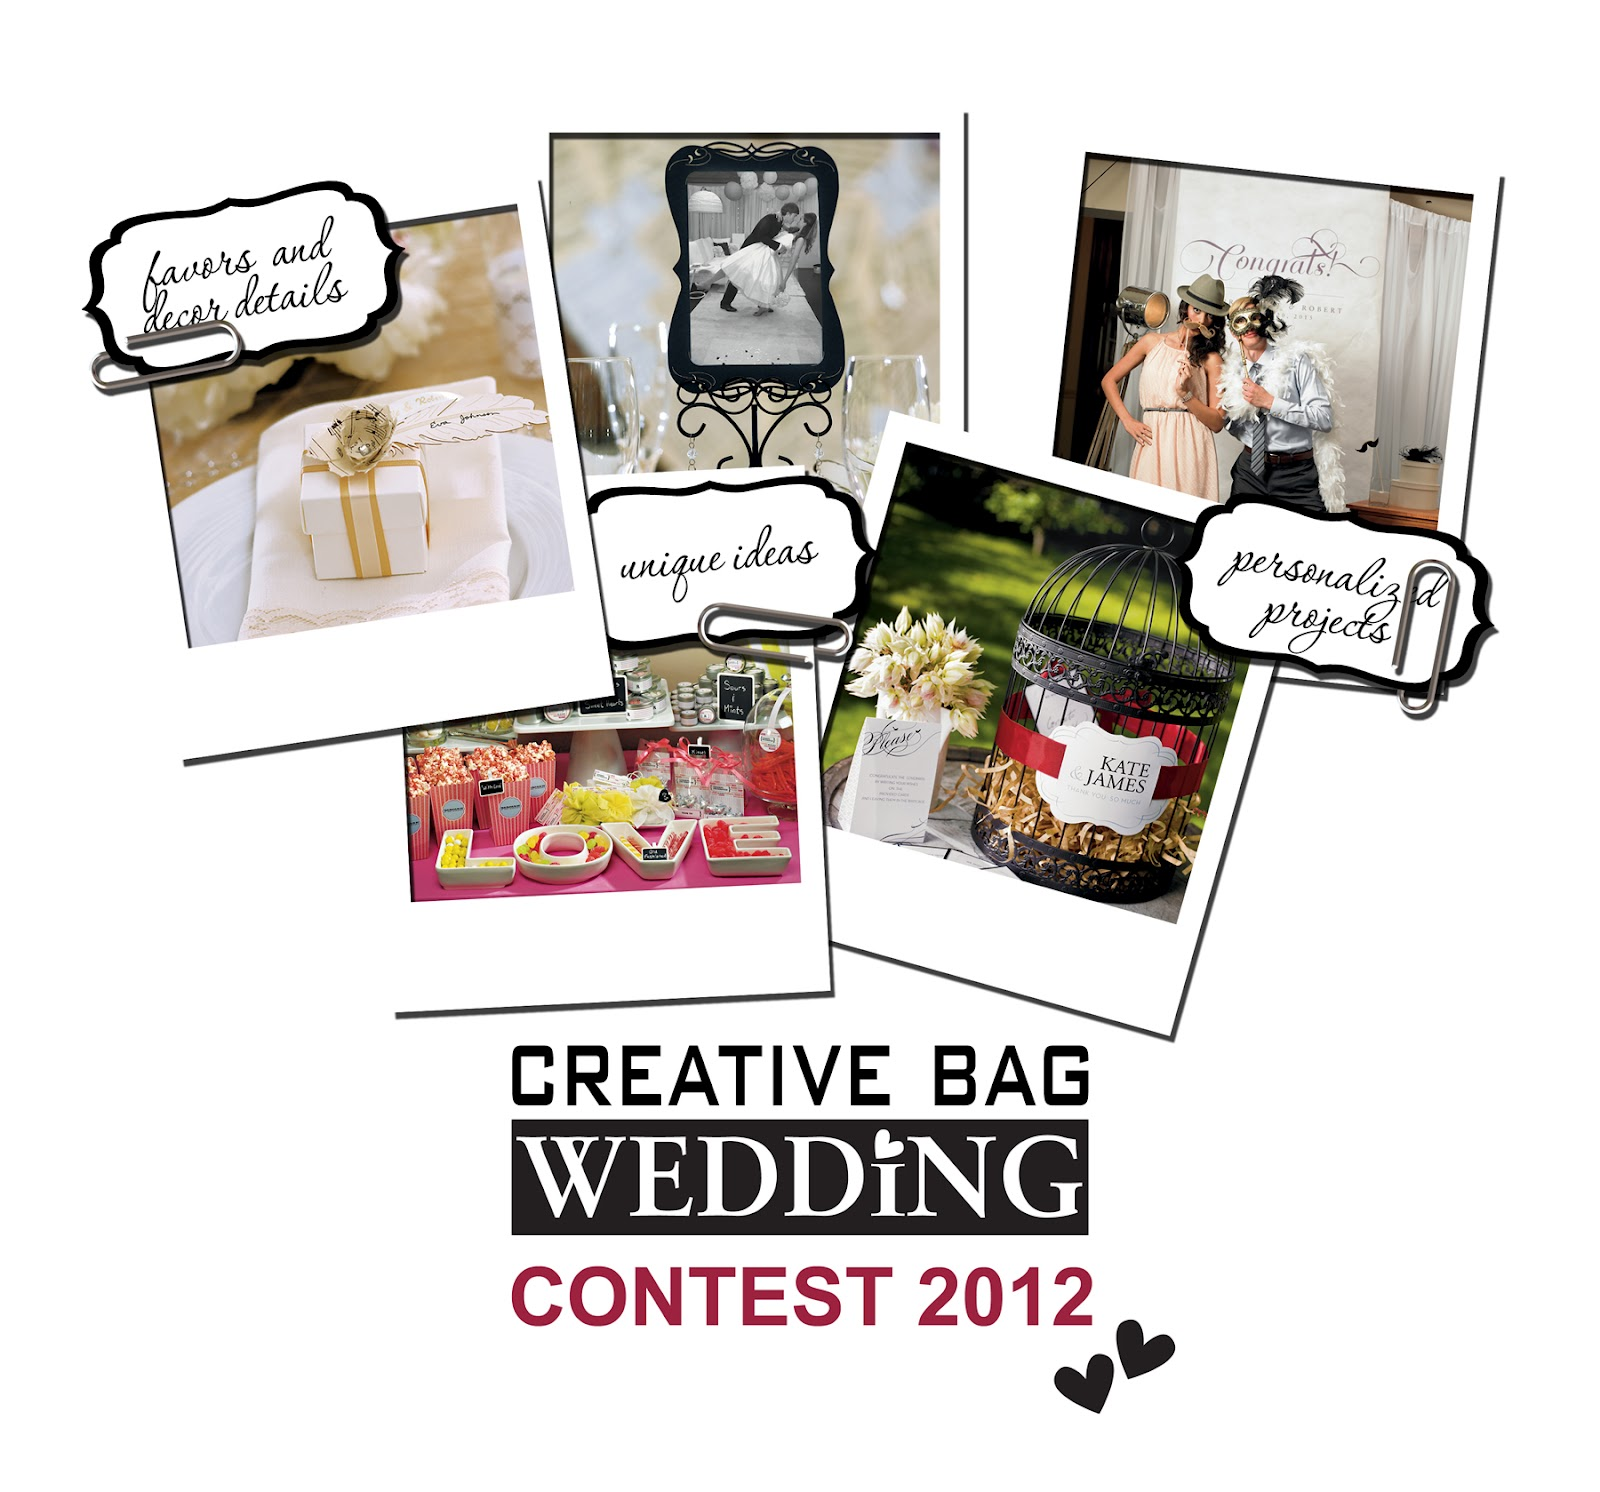 Wedding Giveaway Ideas 2012 : the creative bag blog: Creative Bag Wedding Contest 2012